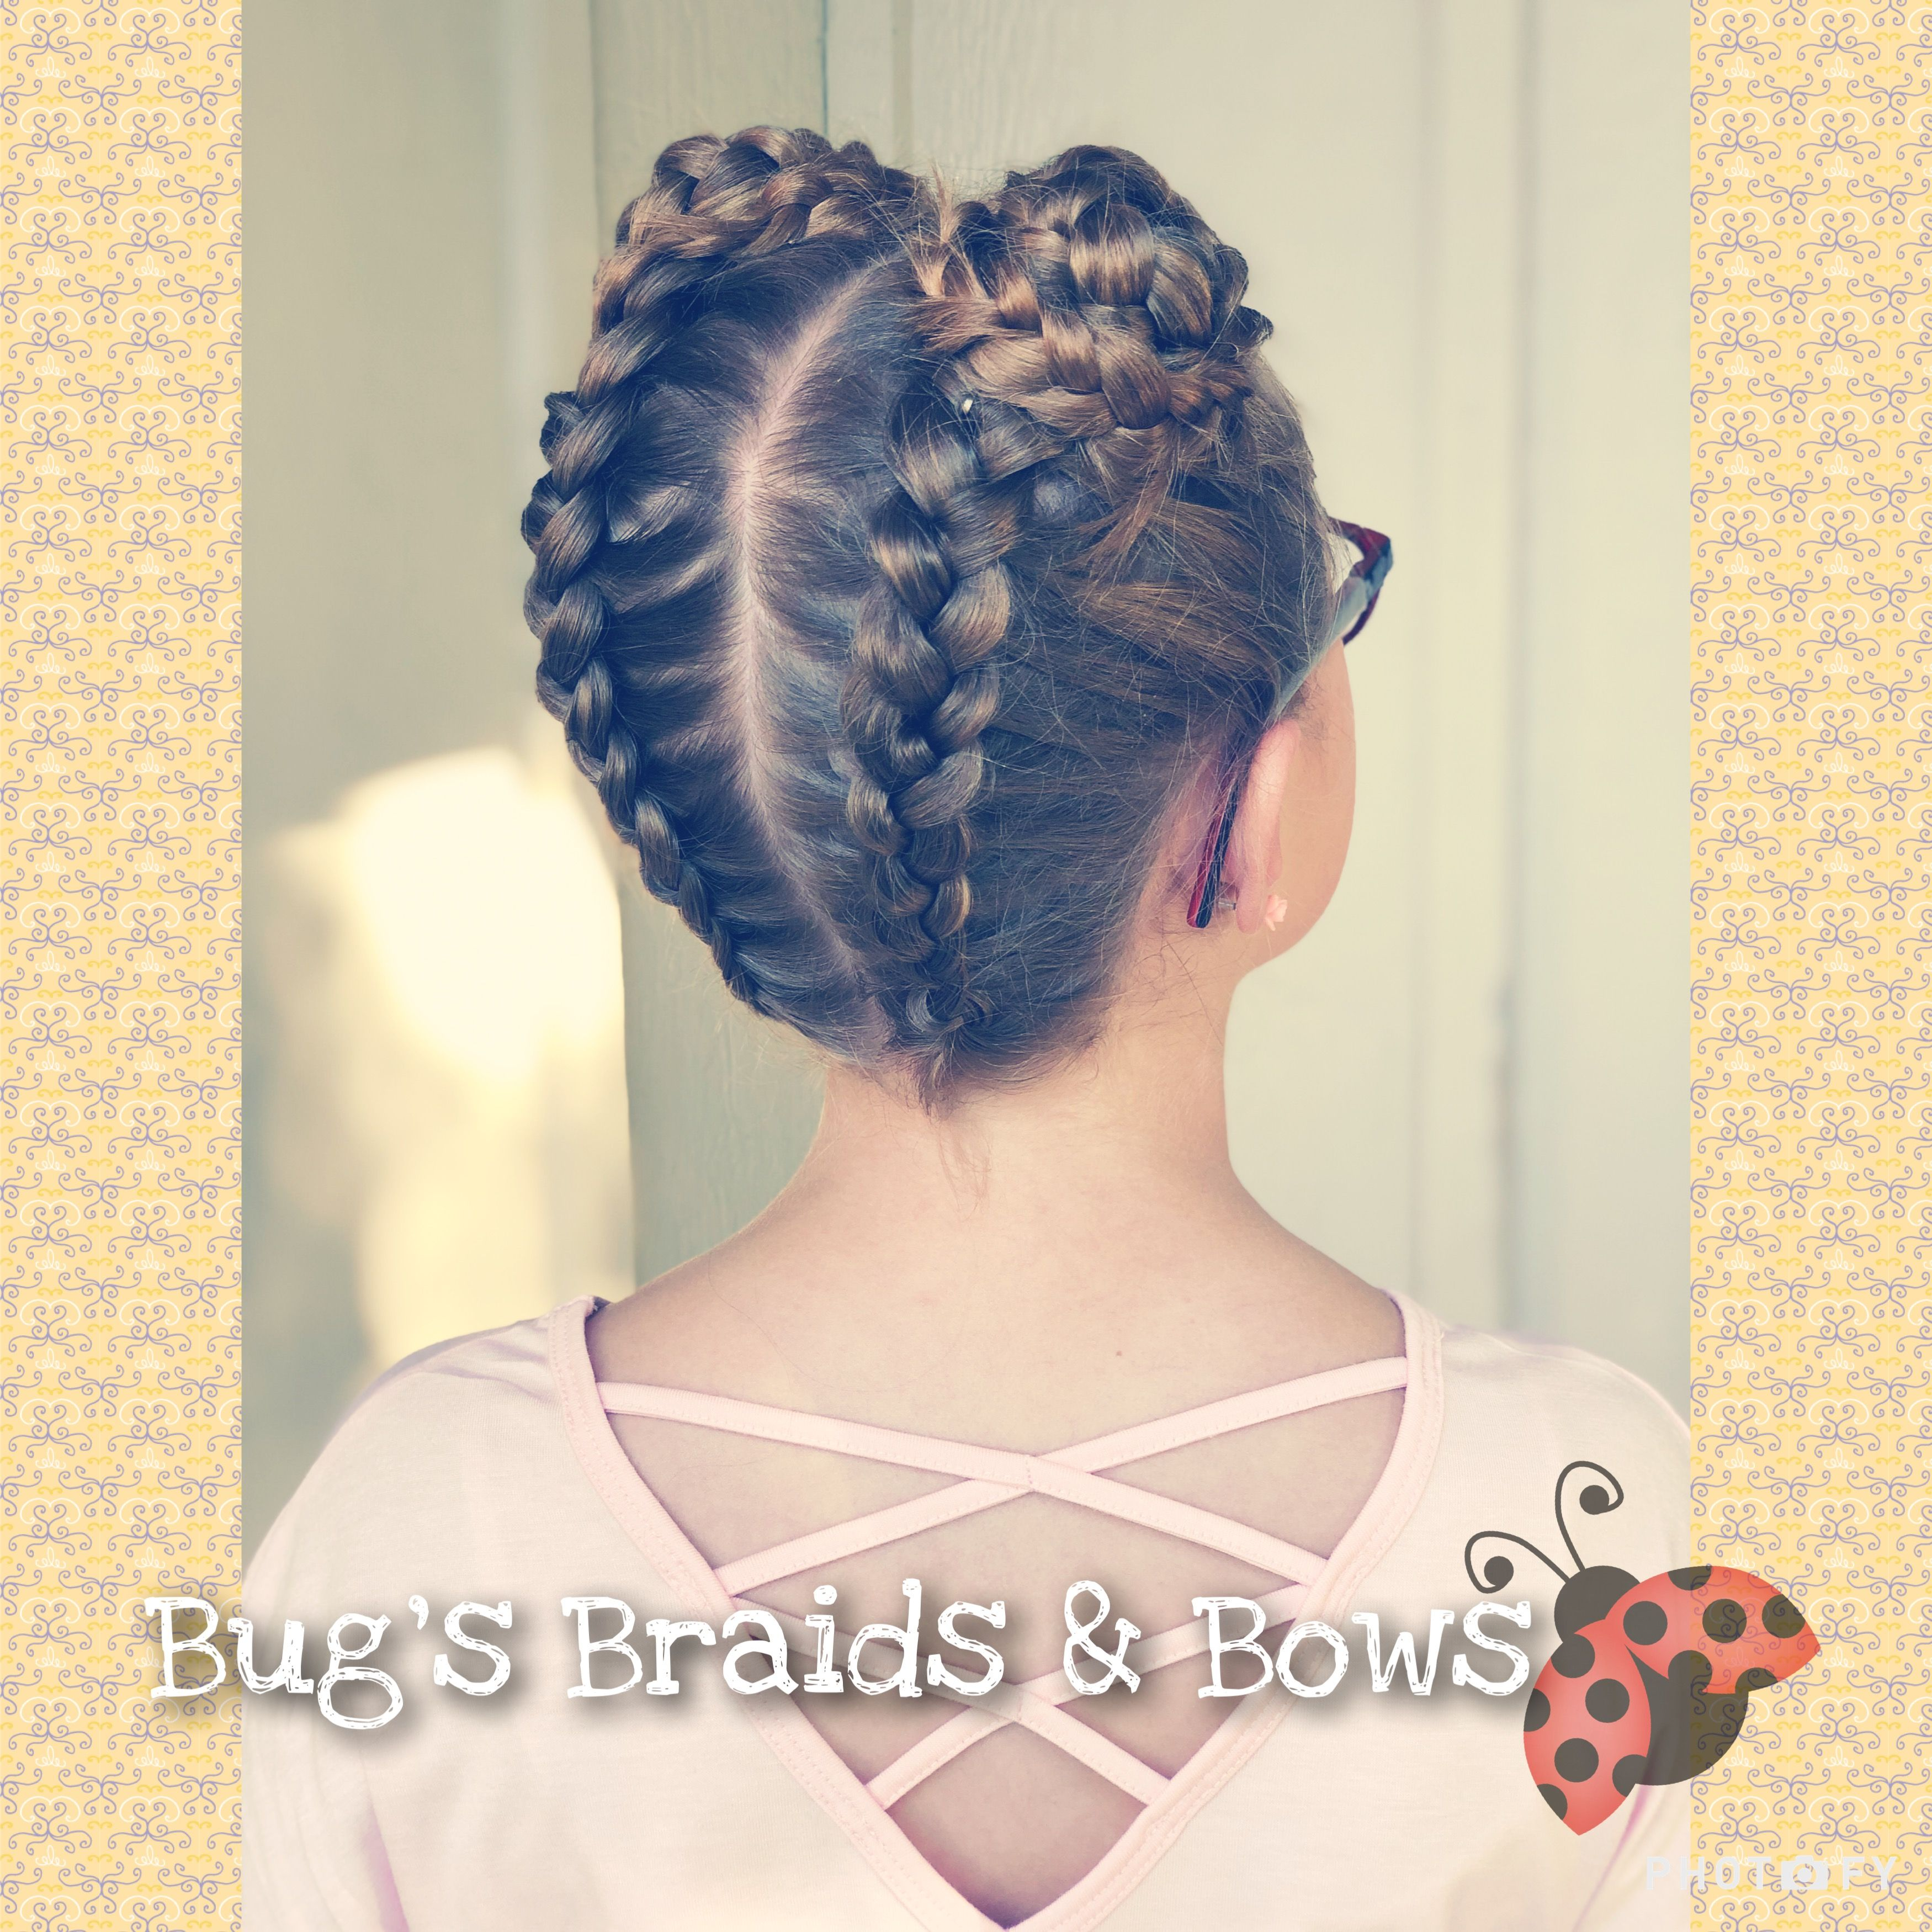 We Are Back To School I Hope Everyone Had A Great First Day Back Yesterday Today We Did Climbing Dutch Braids Into Space B Braids Dutch Braid Hair Styles